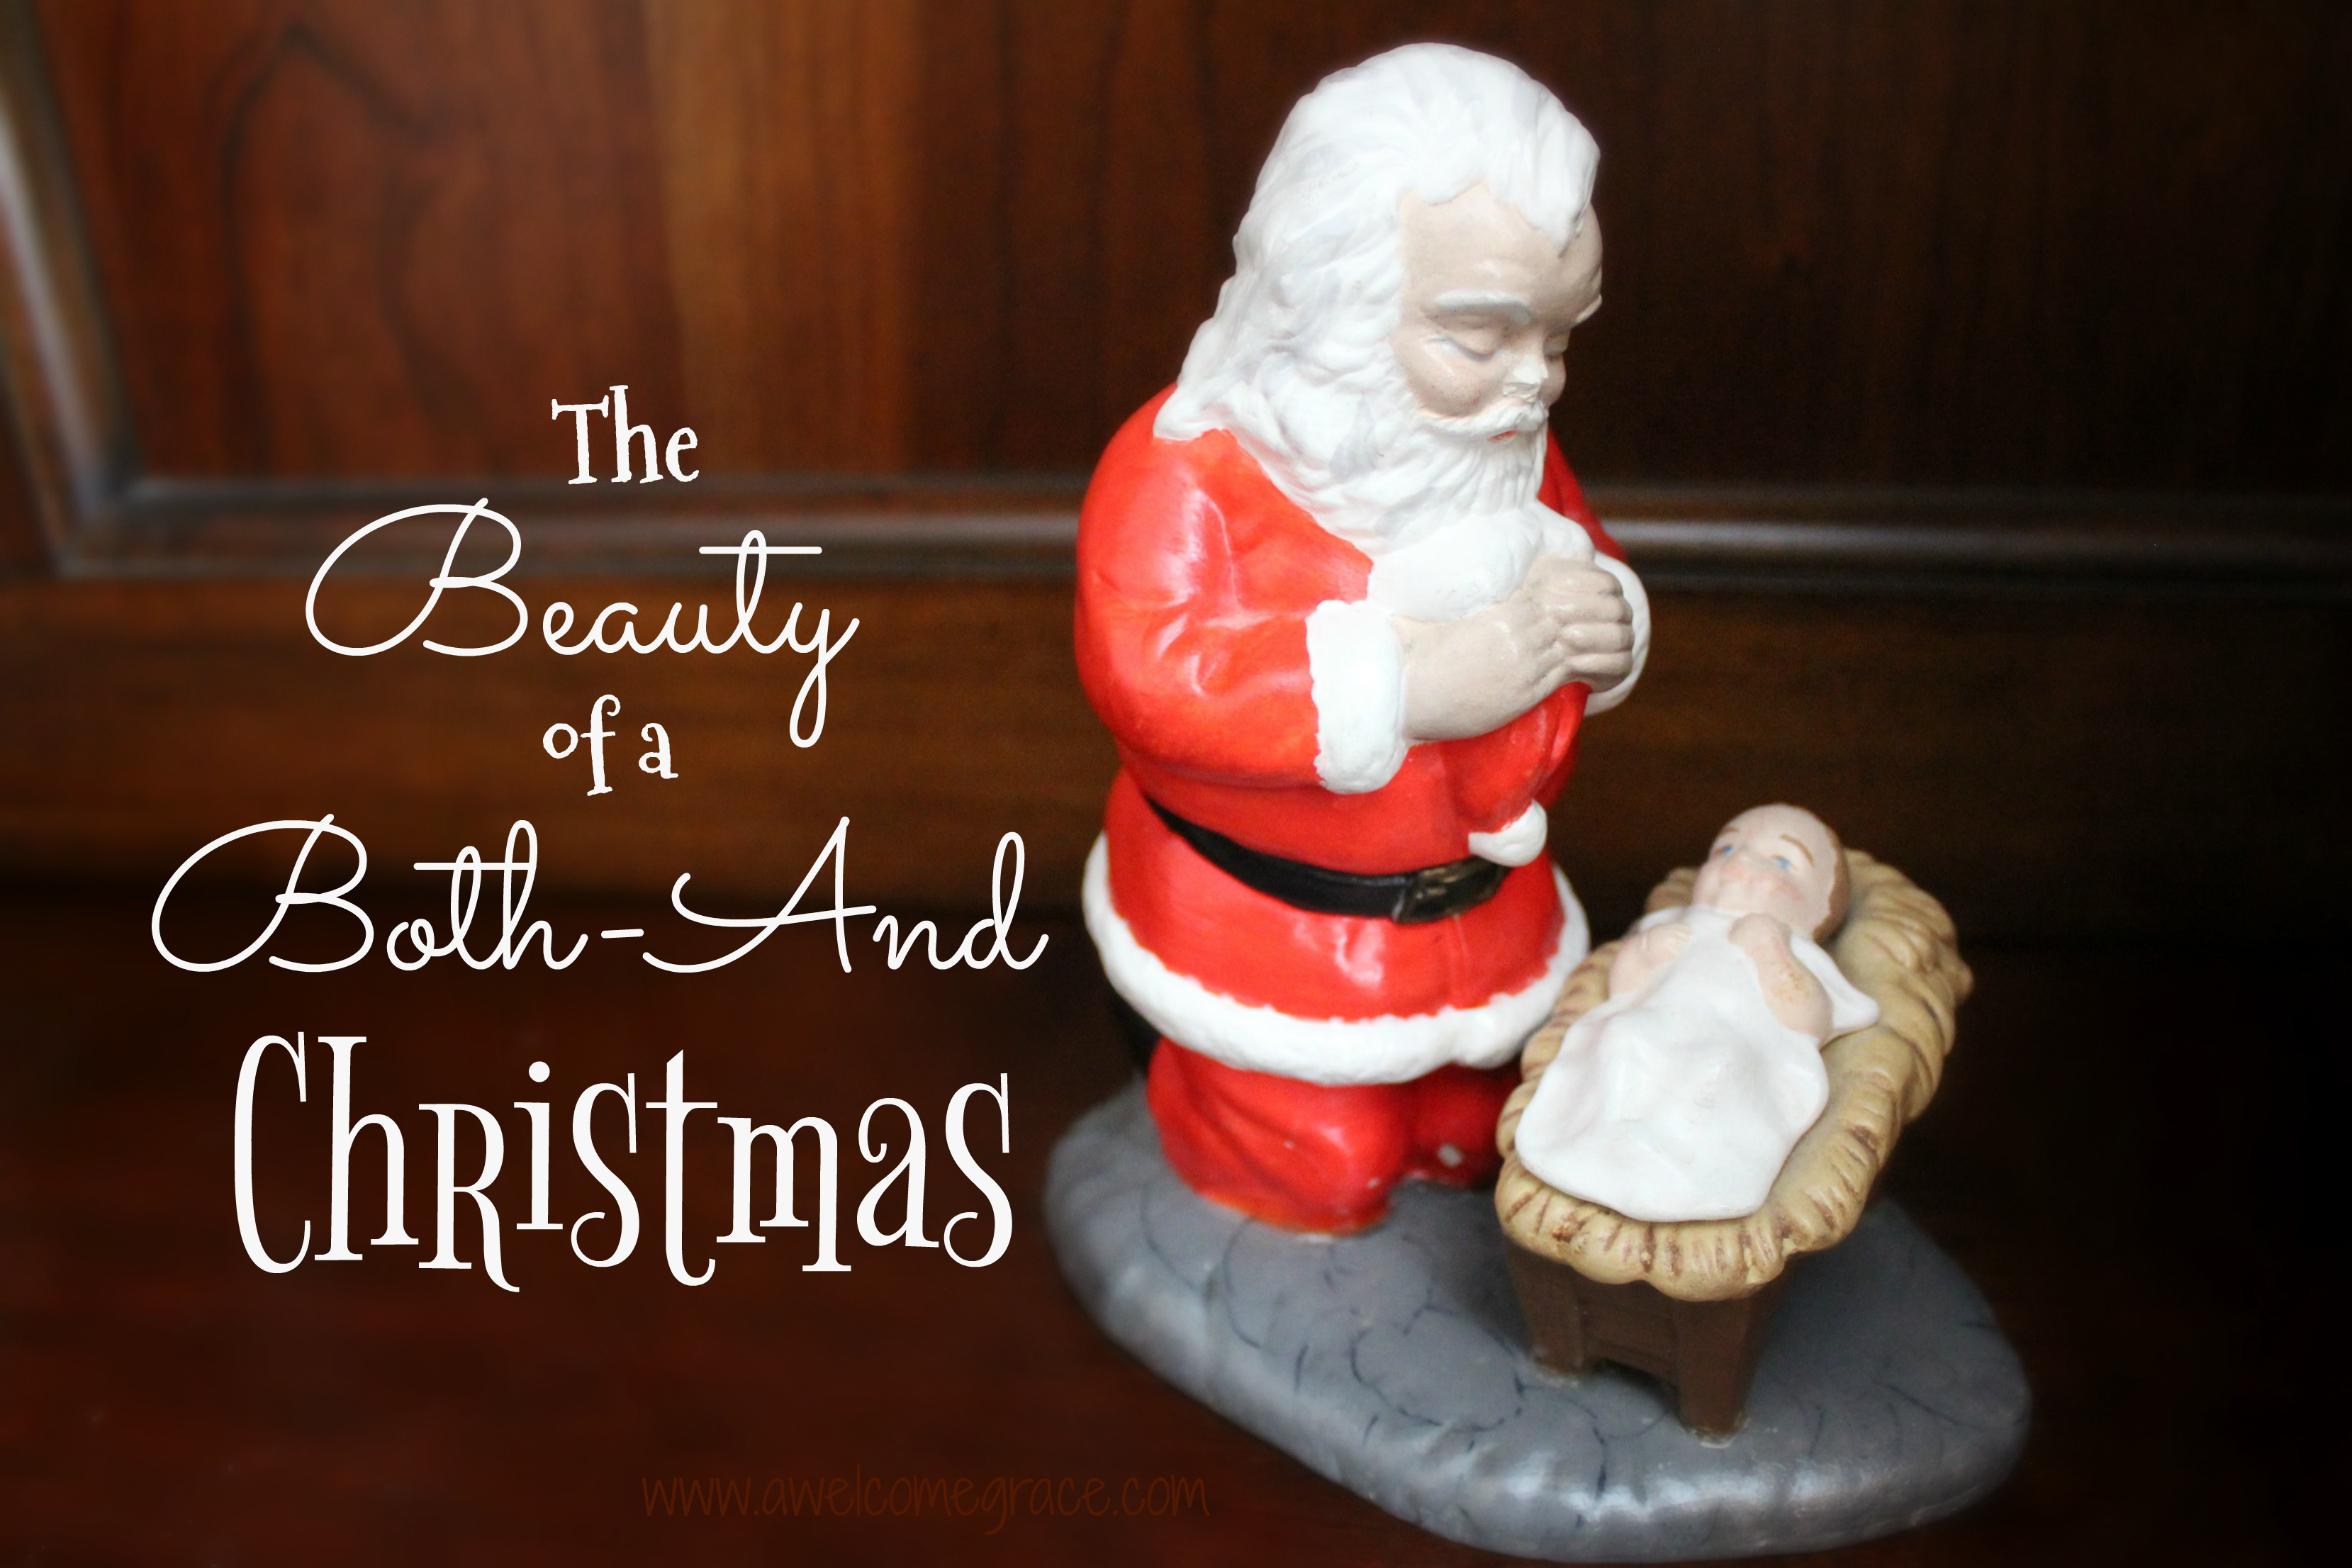 The Beauty of a Both-And Christmas